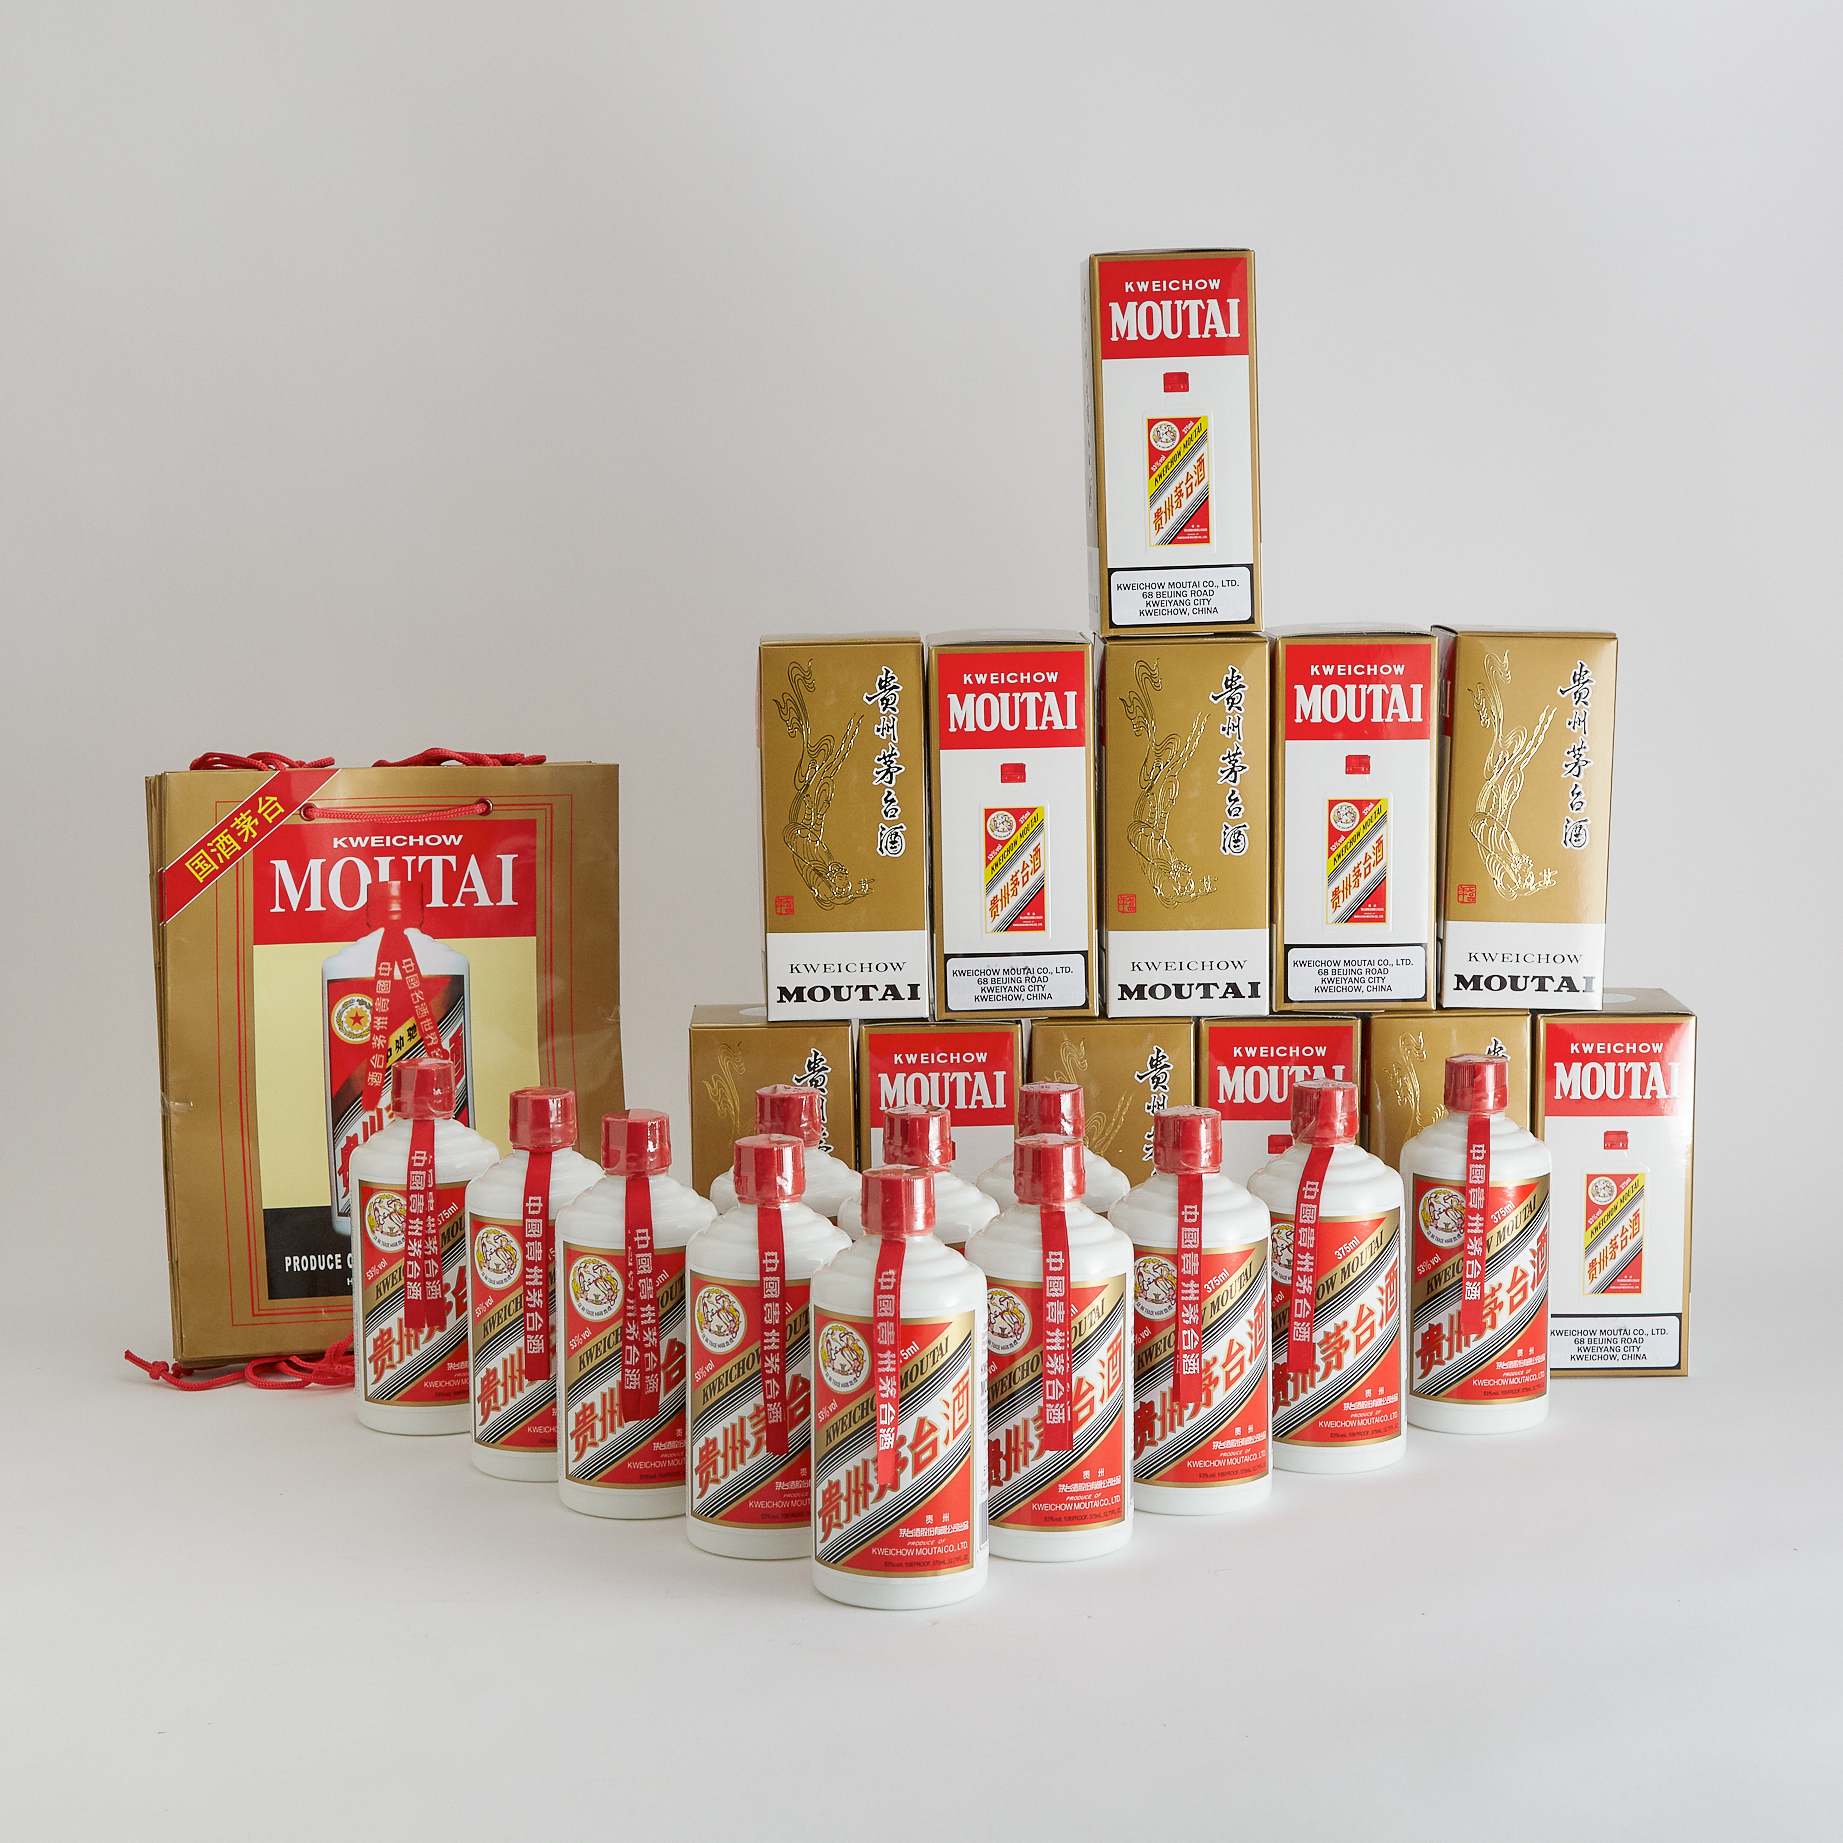 KWEICHOW MOUTAI 2010-2011 NAS (TWELVE 375 ML)